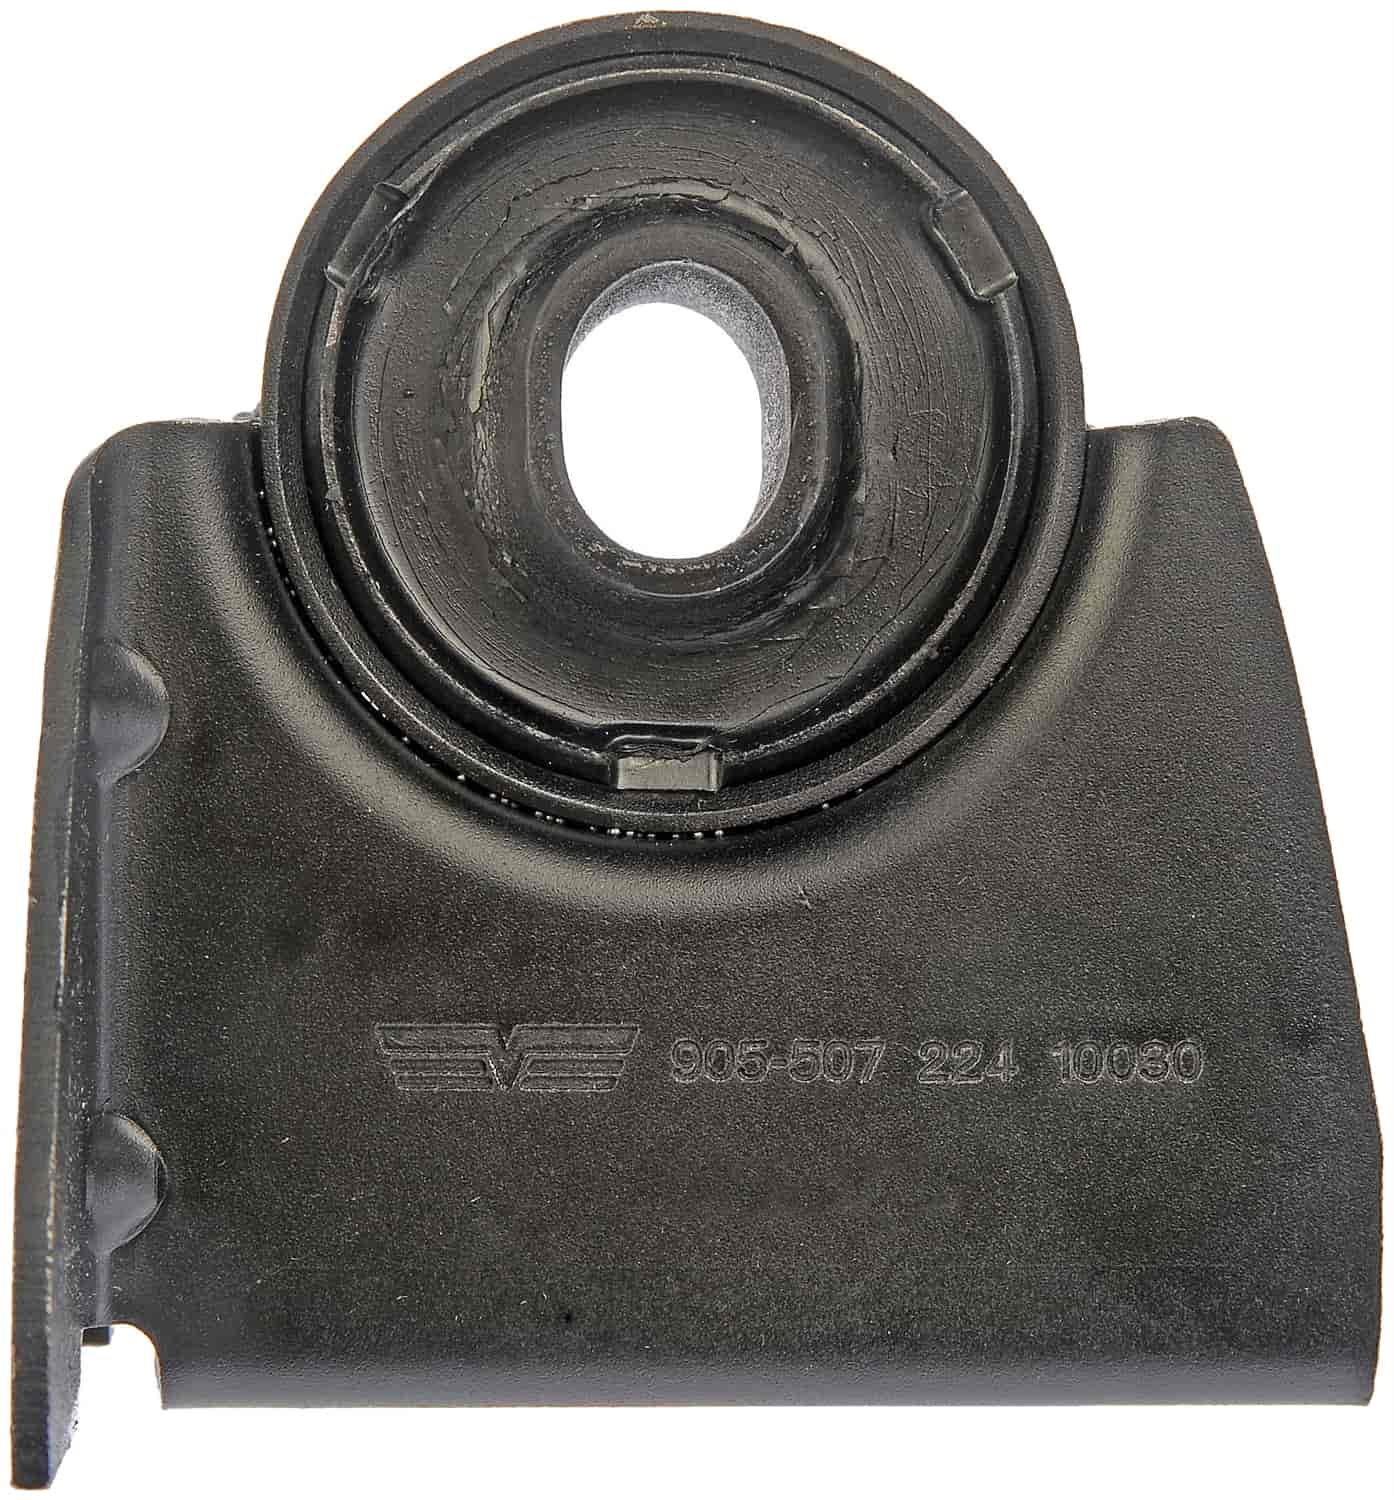 Dorman Products 905-507